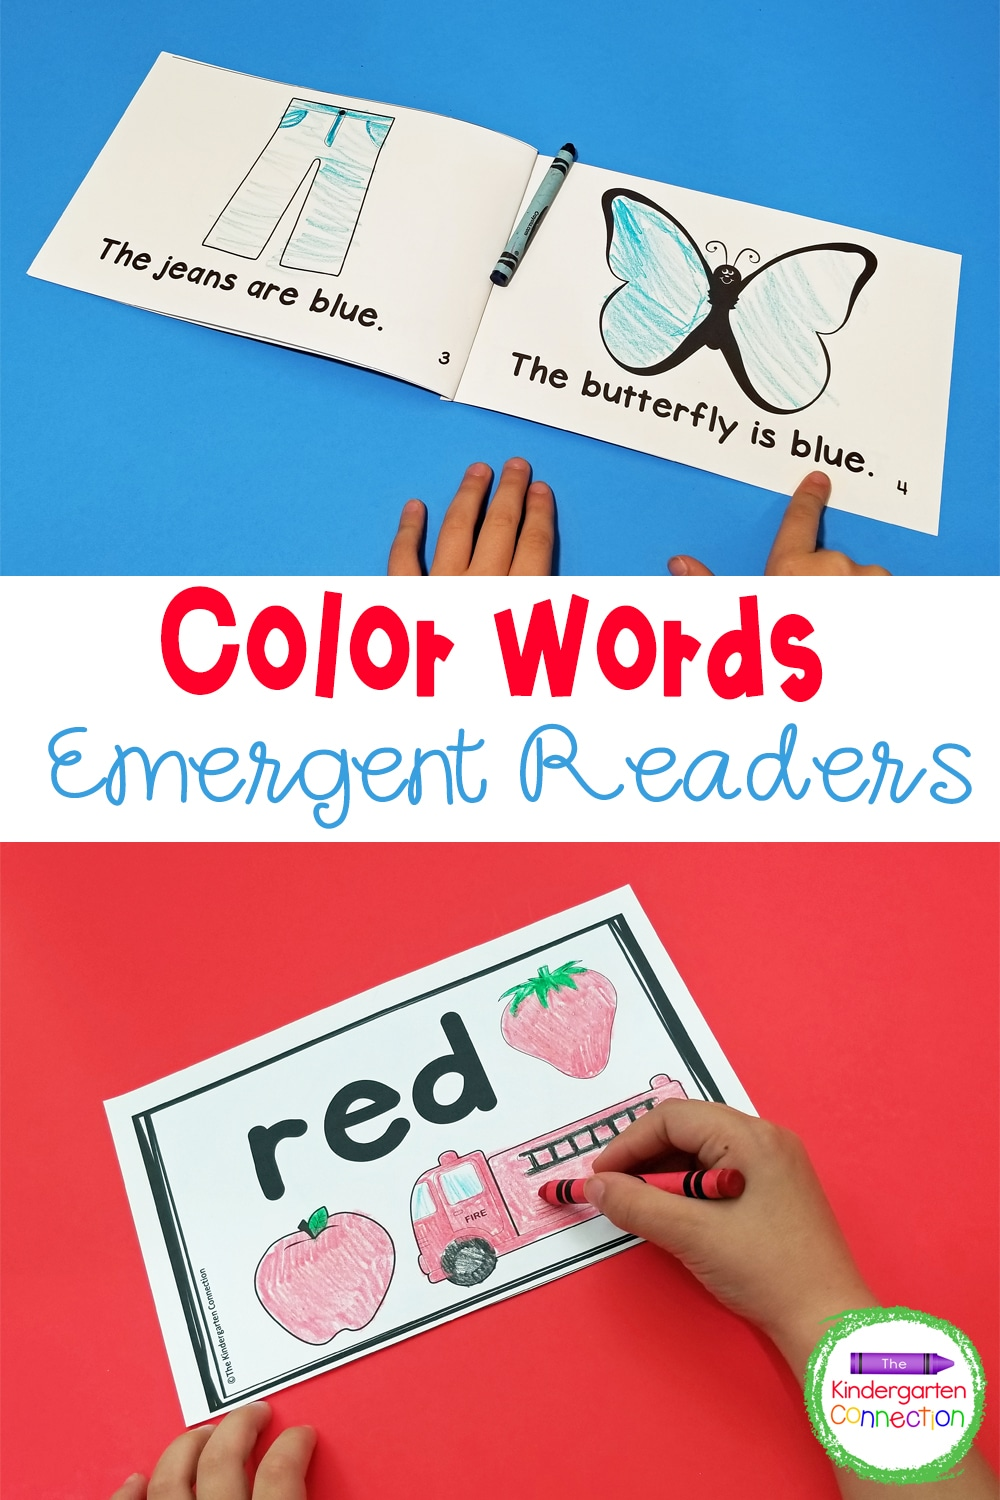 Strengthen color recognition and color word fluency with these engaging, low-prep Color Words Emergent Readers for Pre-K & Kindergarten!